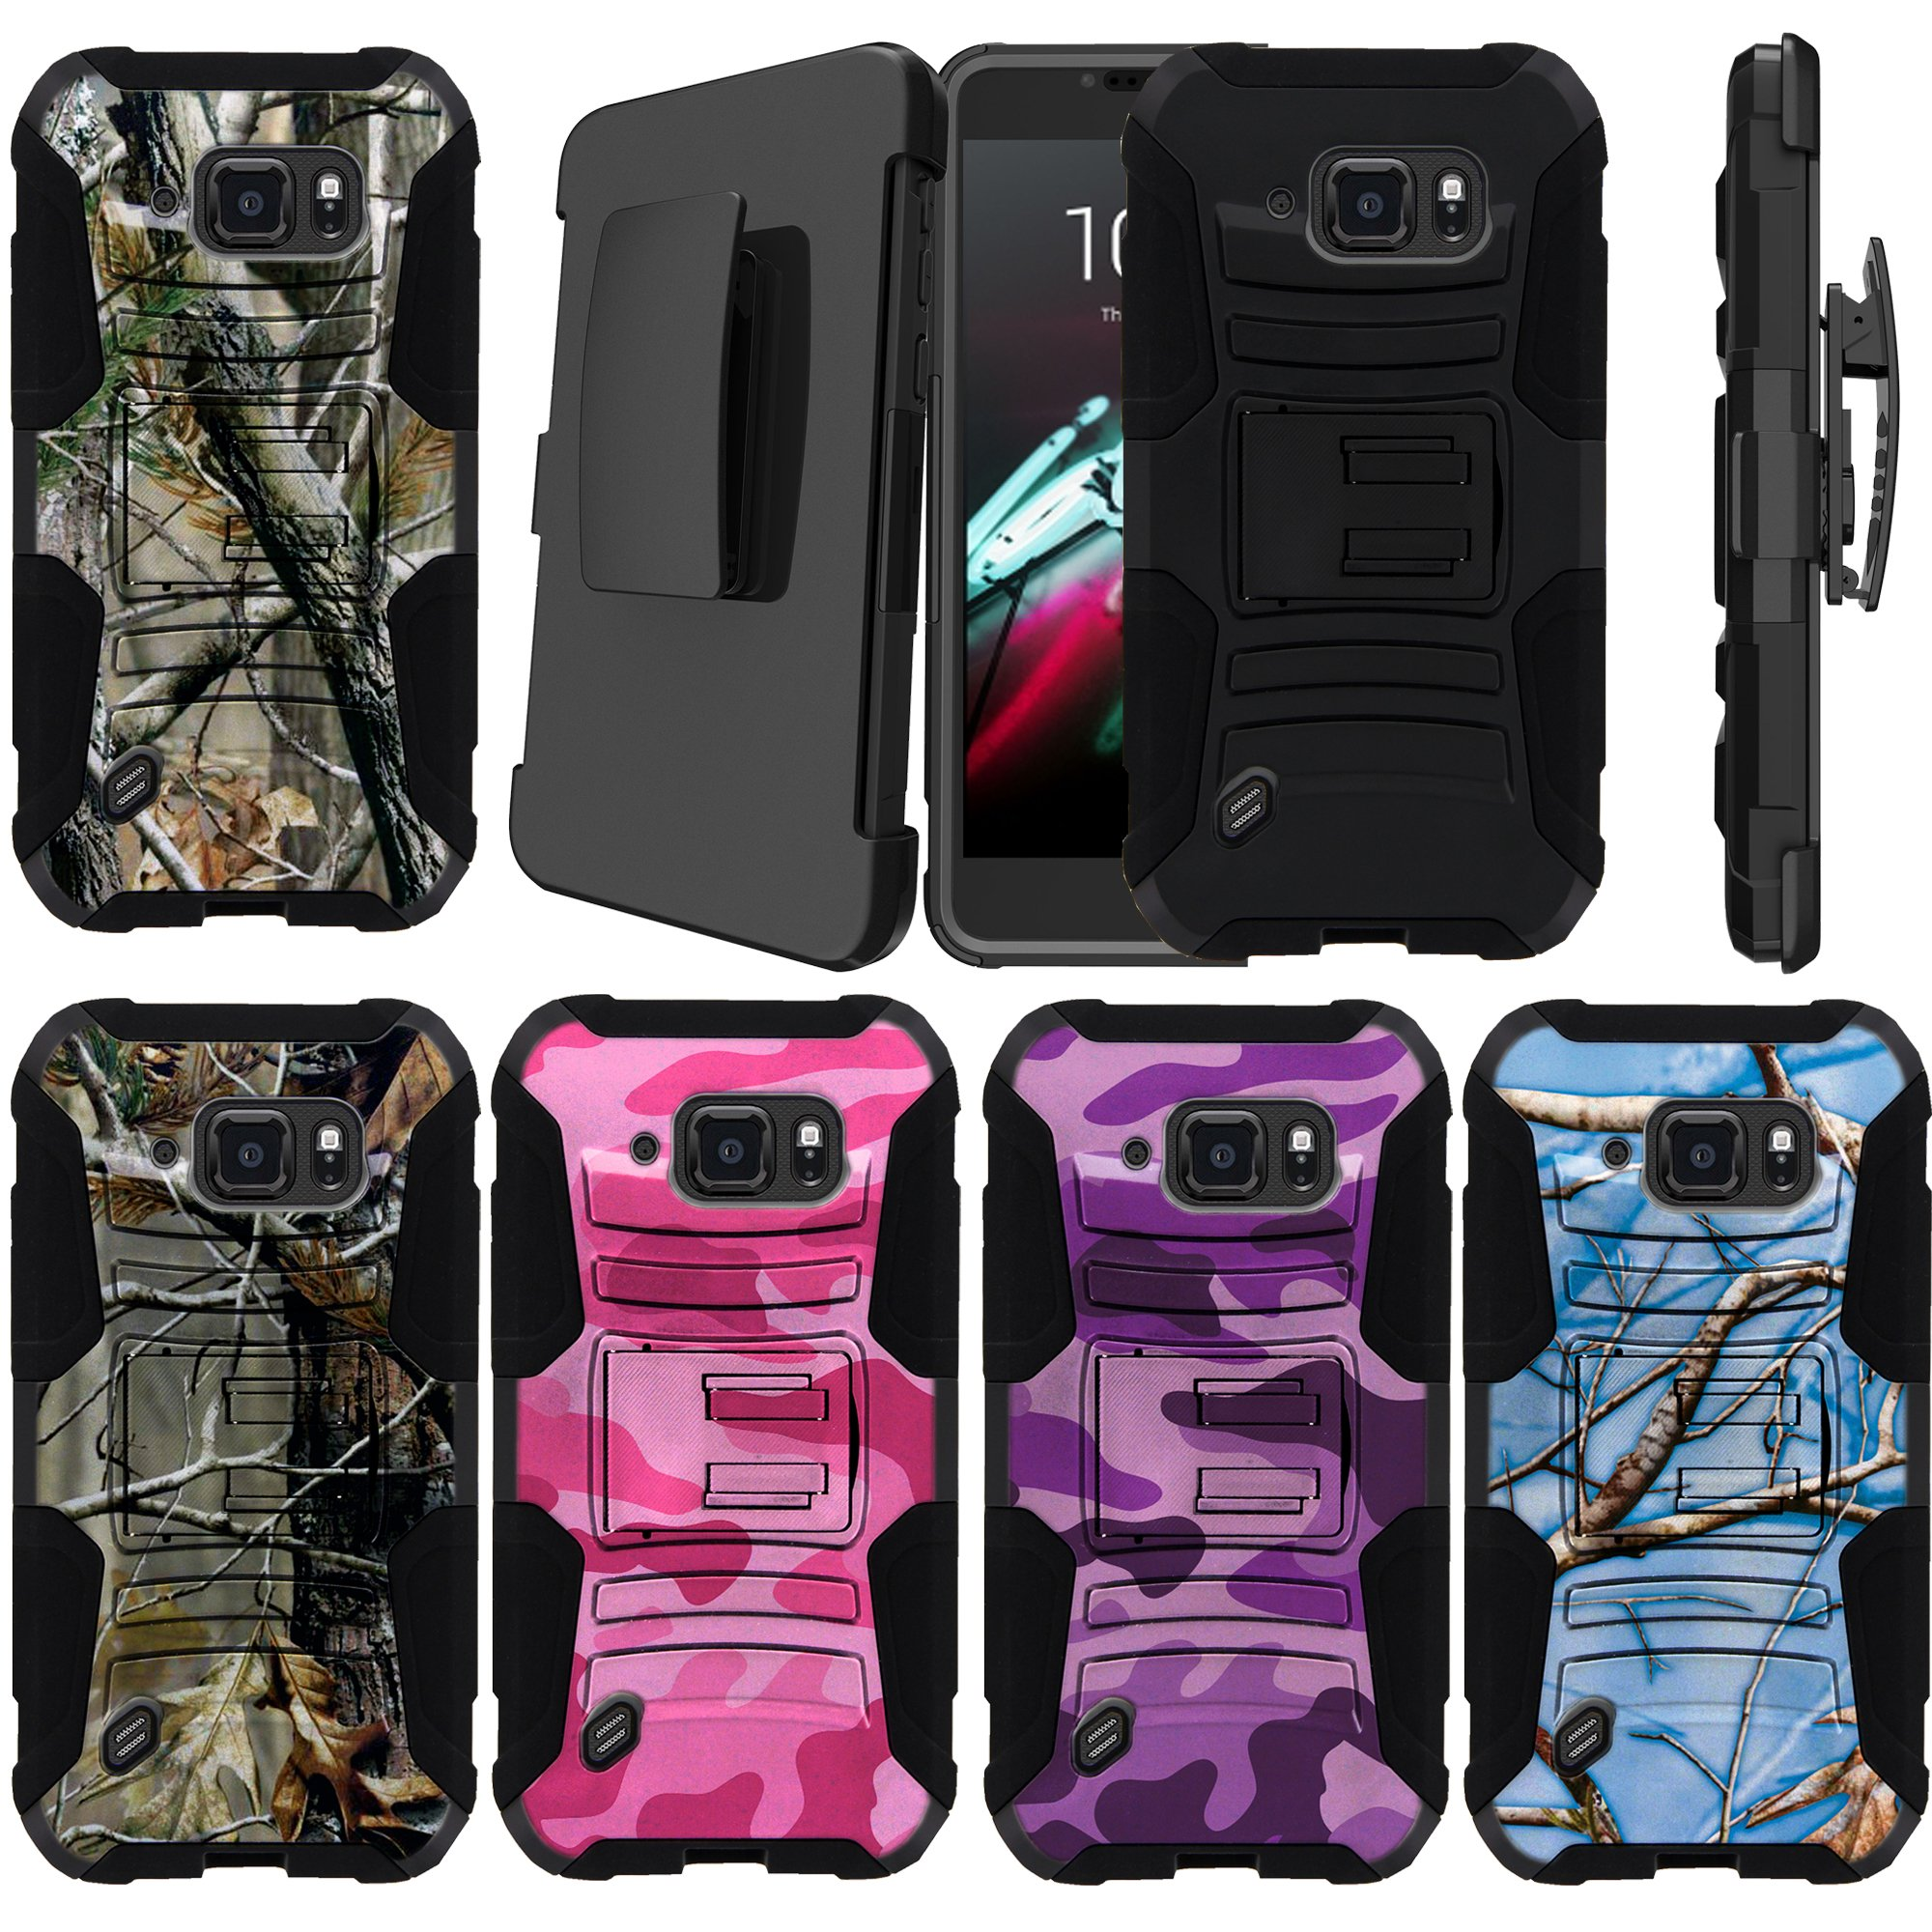 Samsung Galaxy S6 Active Model [NOT FOR REGULAR S6] Holster Case [Camo Case][Camouflage Phone Case Series] w/ Built-In Kickstand + Bonus Holster - Plain Black /No Design